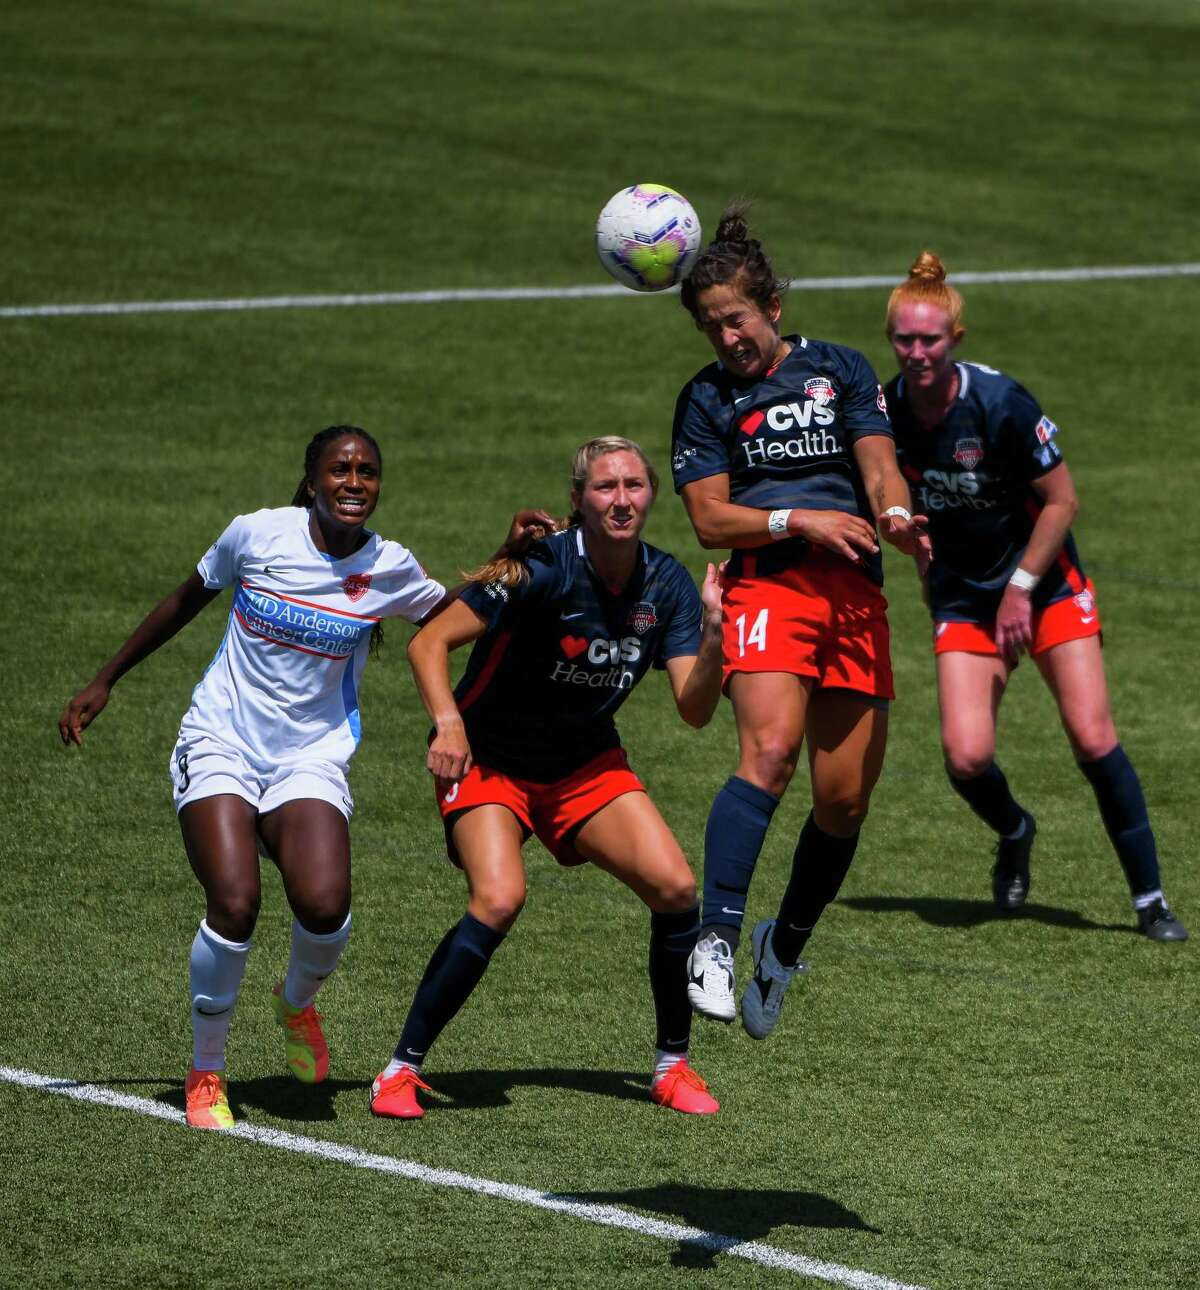 HERRIMAN, UT - JULY 12: Paige Nielsen #14 of Washington Spirit attempts a header during a game against the Houston Dash on day 7 of the NWSL Challenge Cup at Zions Bank Stadium on July 12, 2020 in Herriman, Utah.